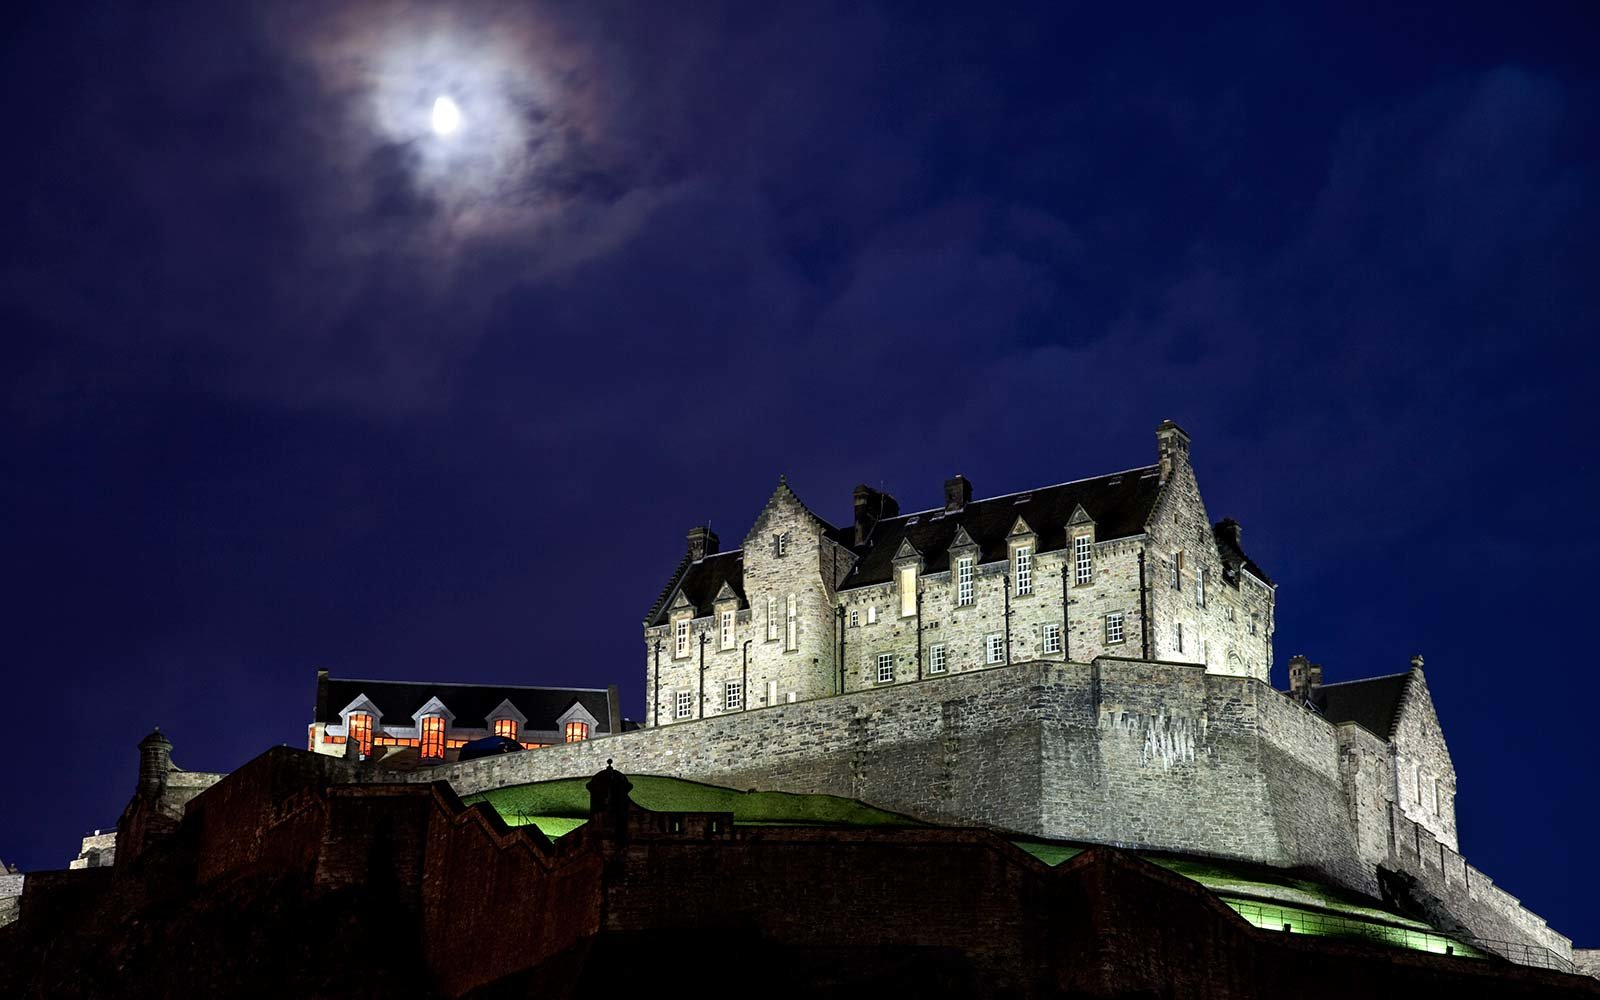 edinburgh-castle-scotland-HAUNTED0917.jpg